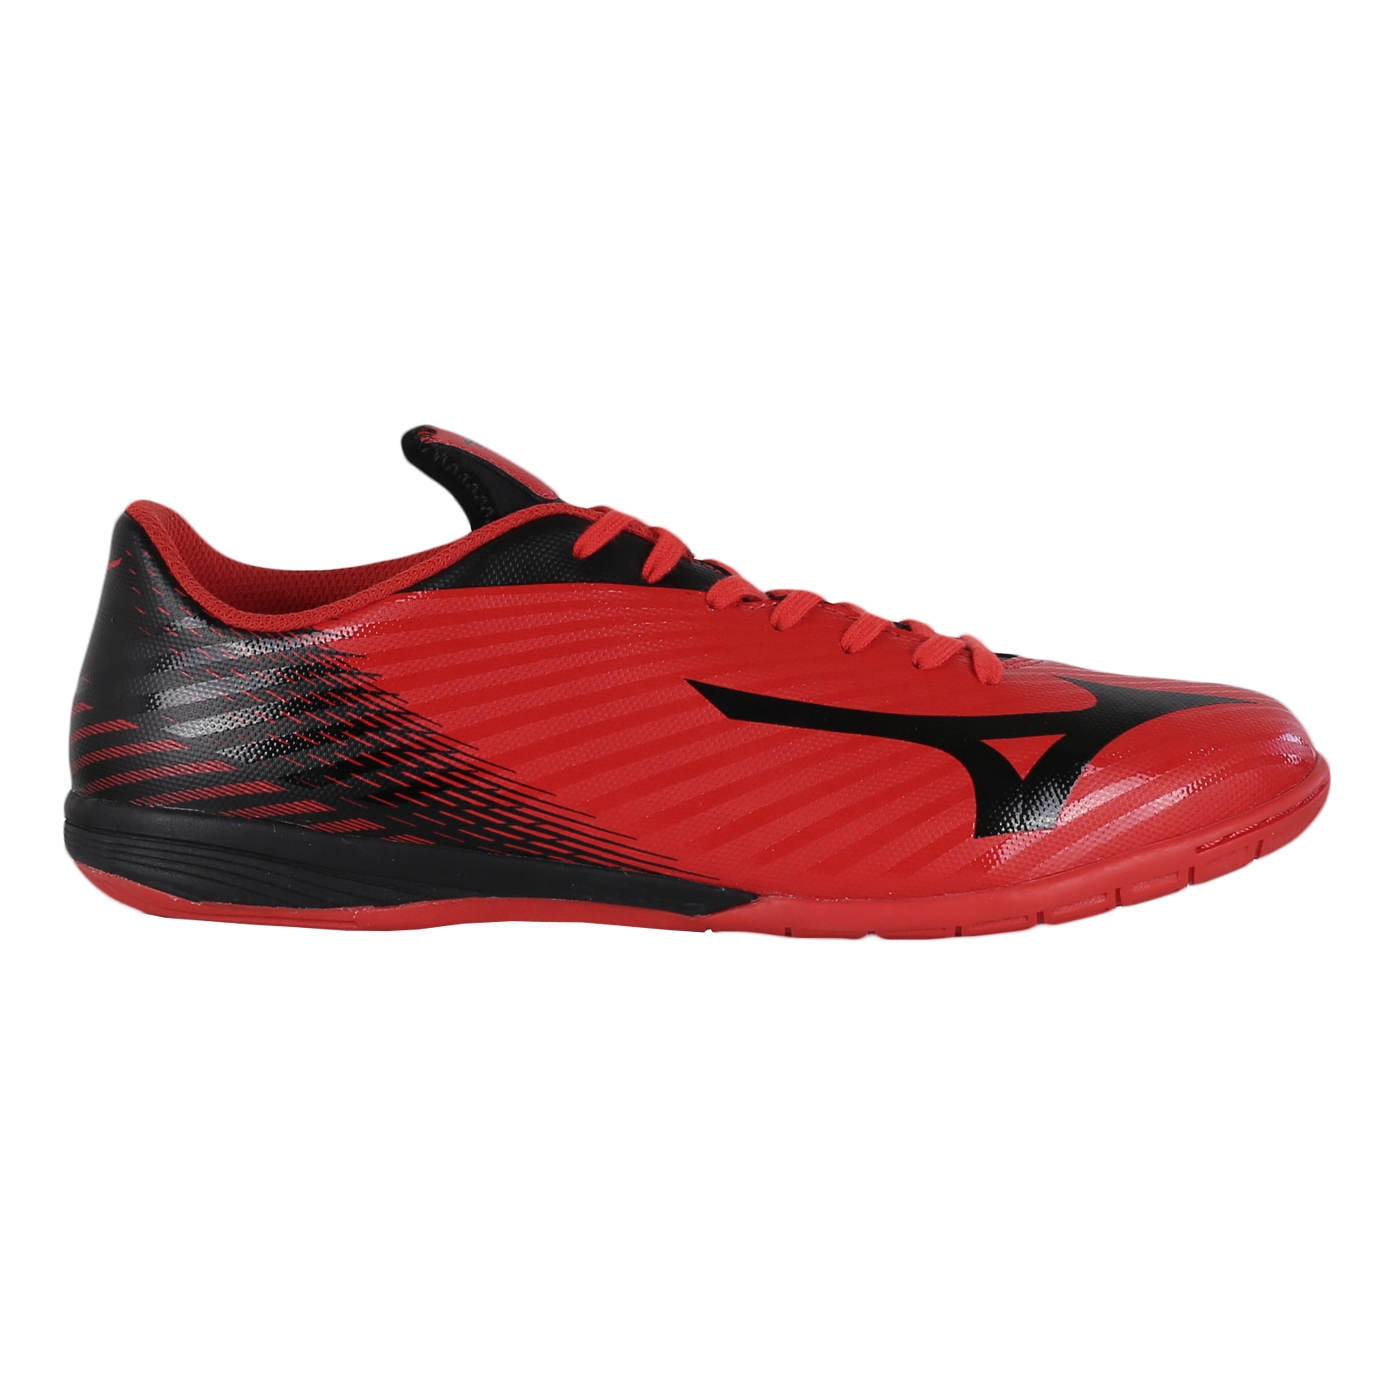 BASARA SALA SELECT IN - FLAME SCARLET/ BLACK